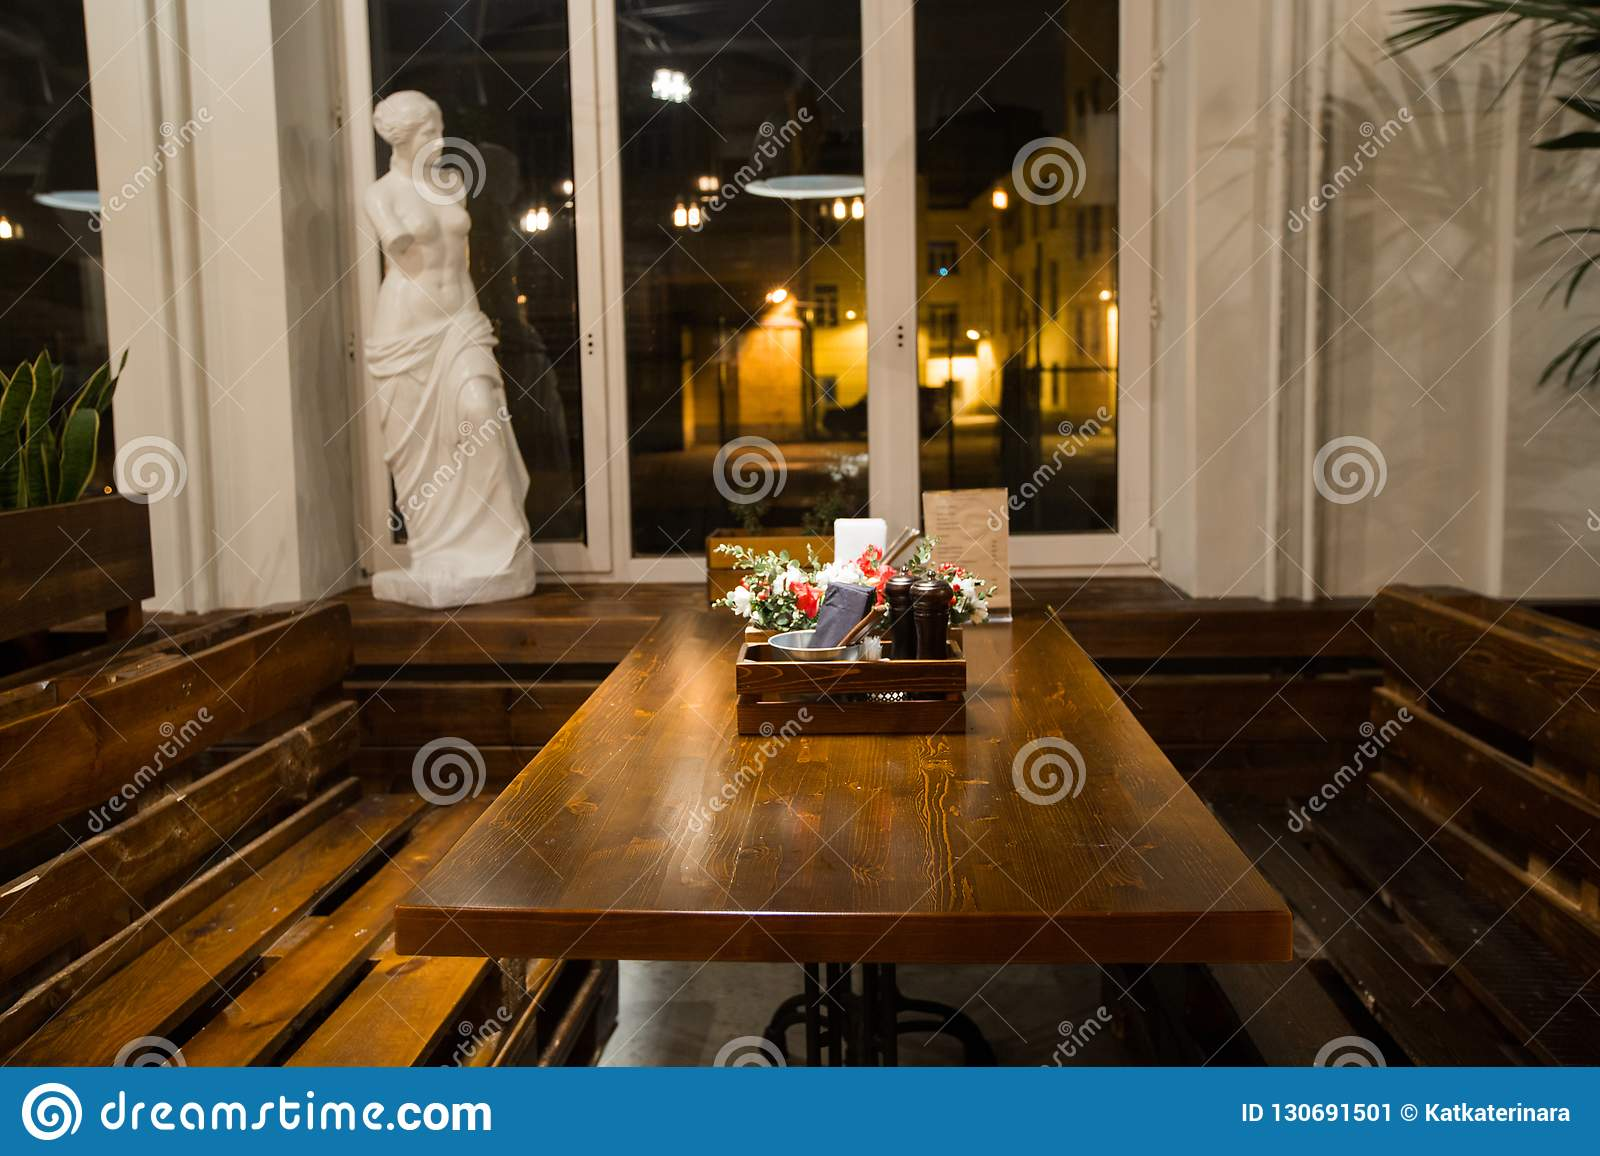 Restaurant interior with wooden tables and flowers and green plants